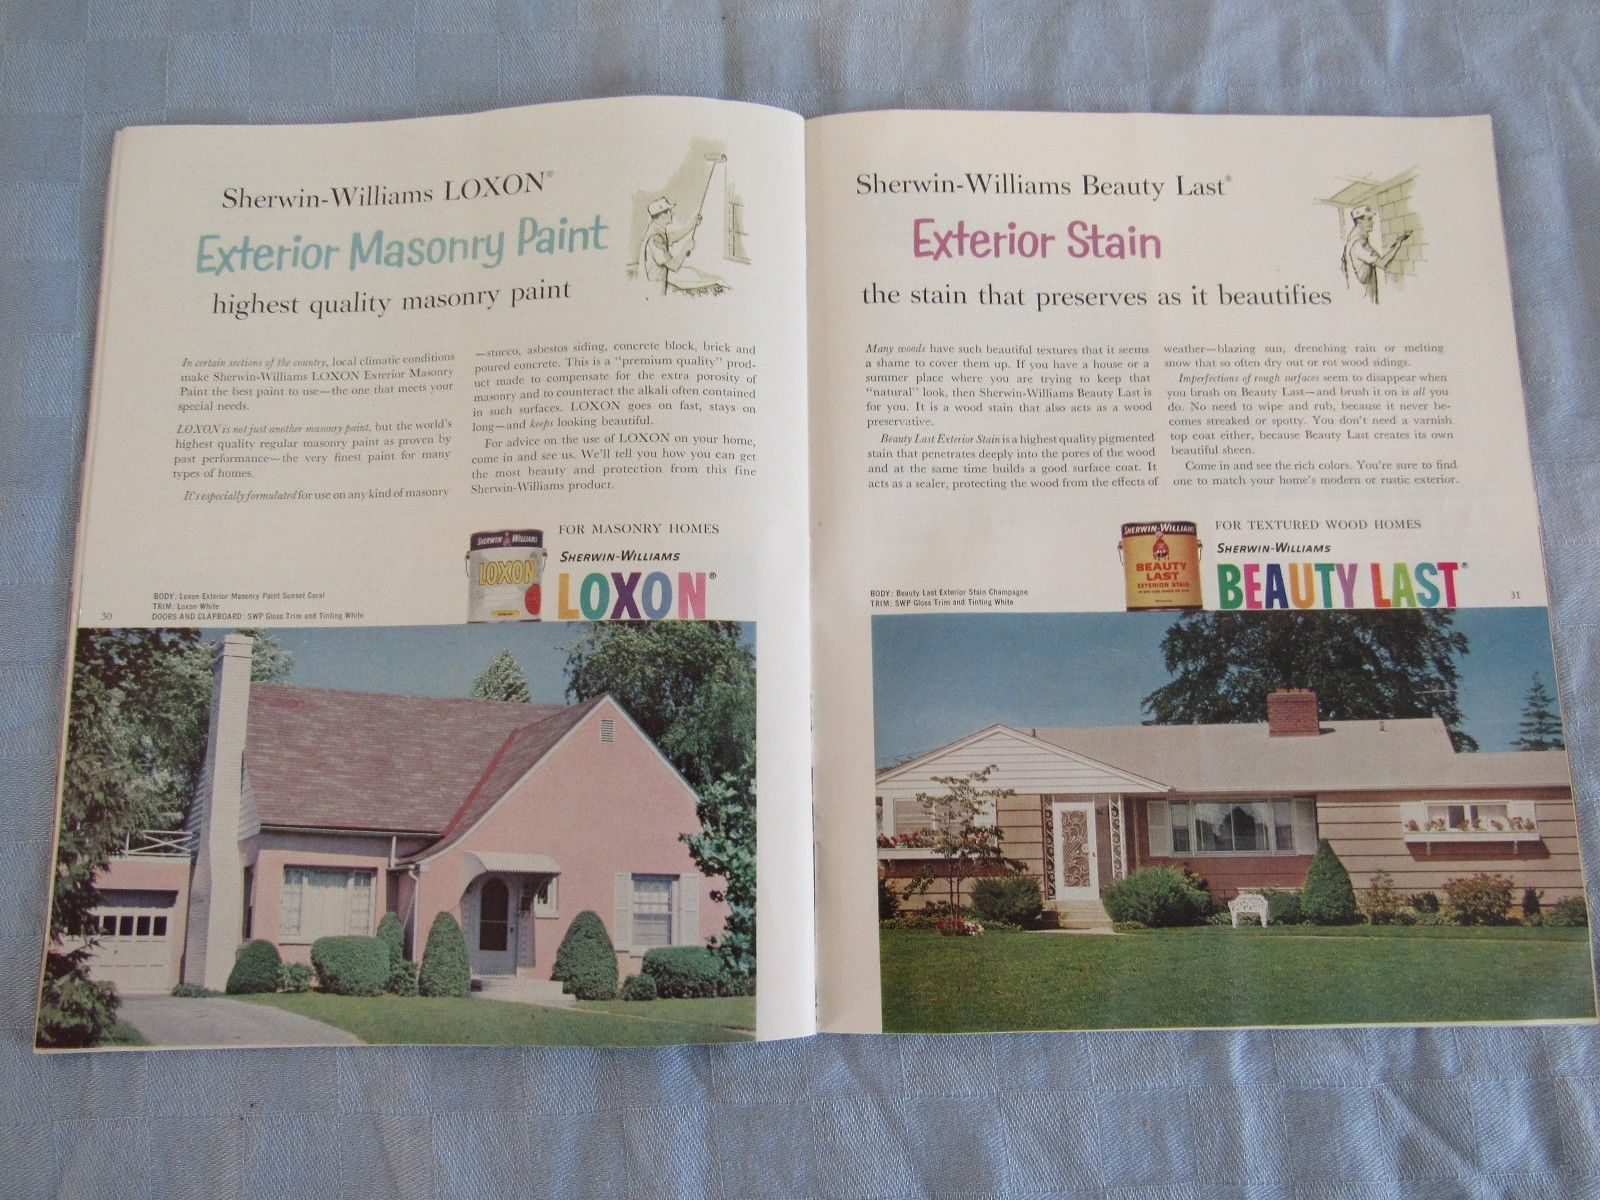 Vintage 1961 Sherwin-Williams Home Decorator Paint Catalog How To Paint Book